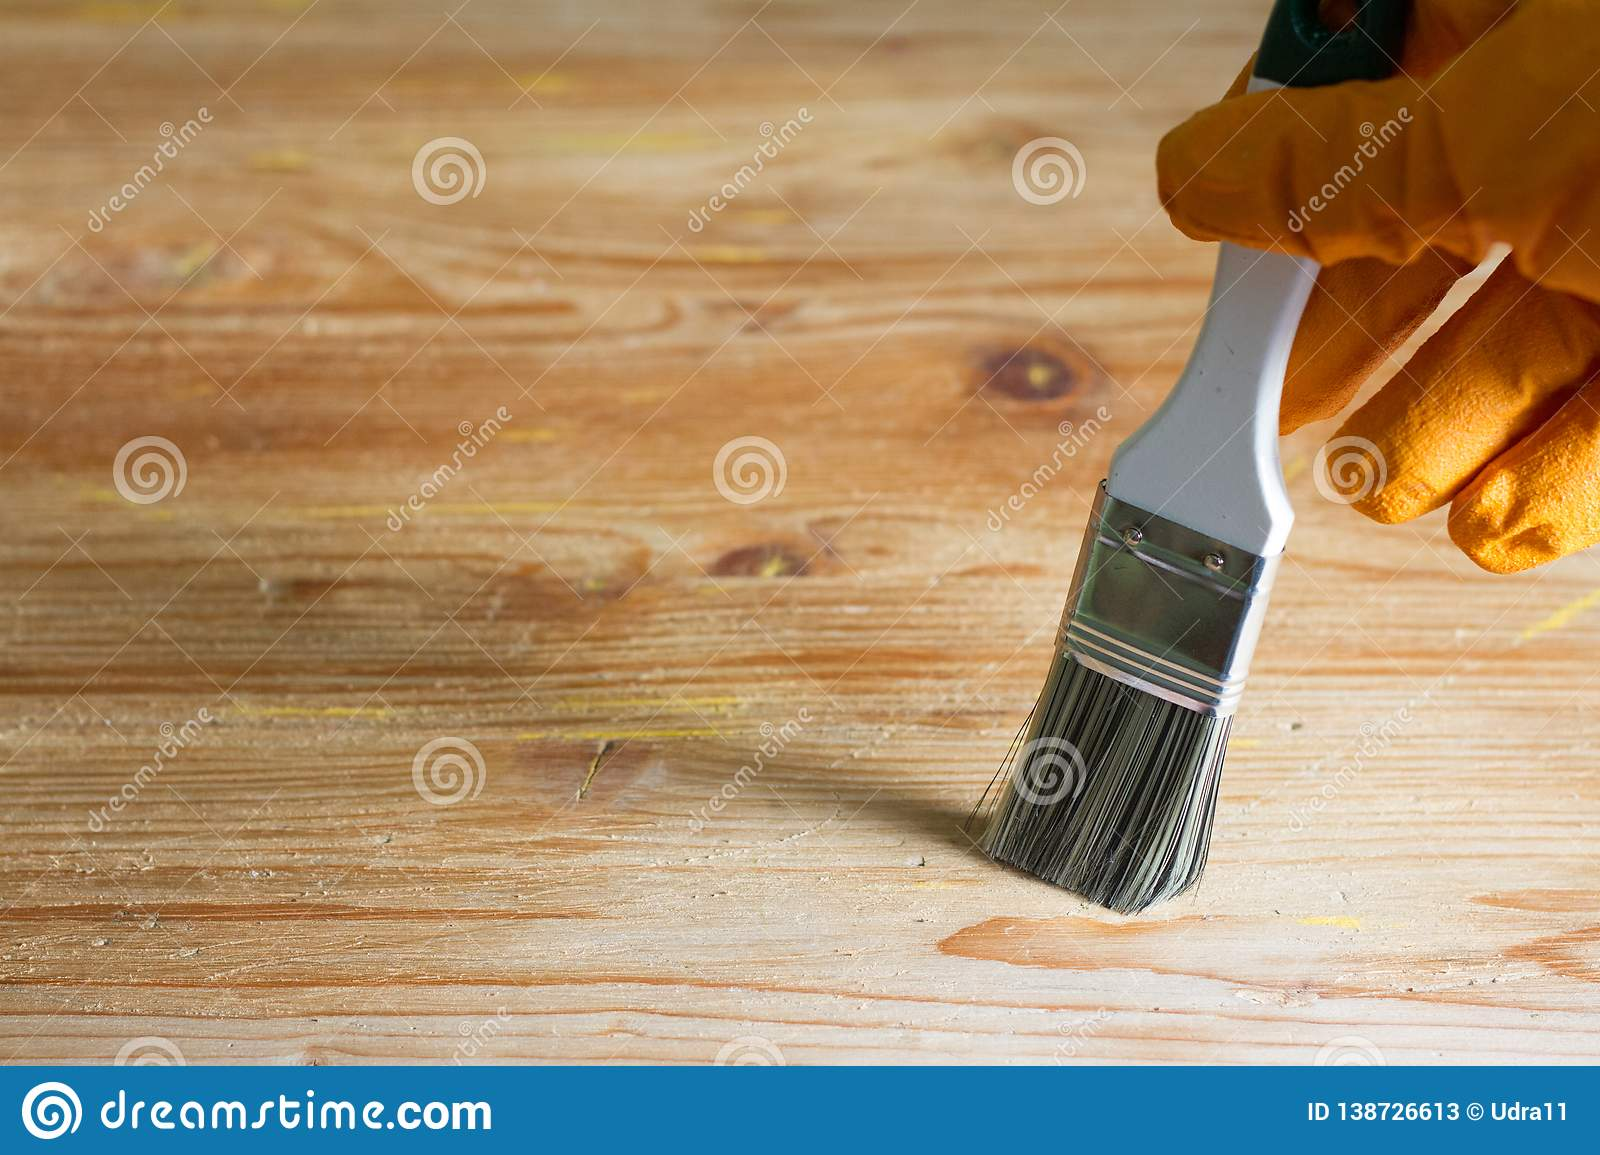 Painting and home renovation abstract background on wooden board